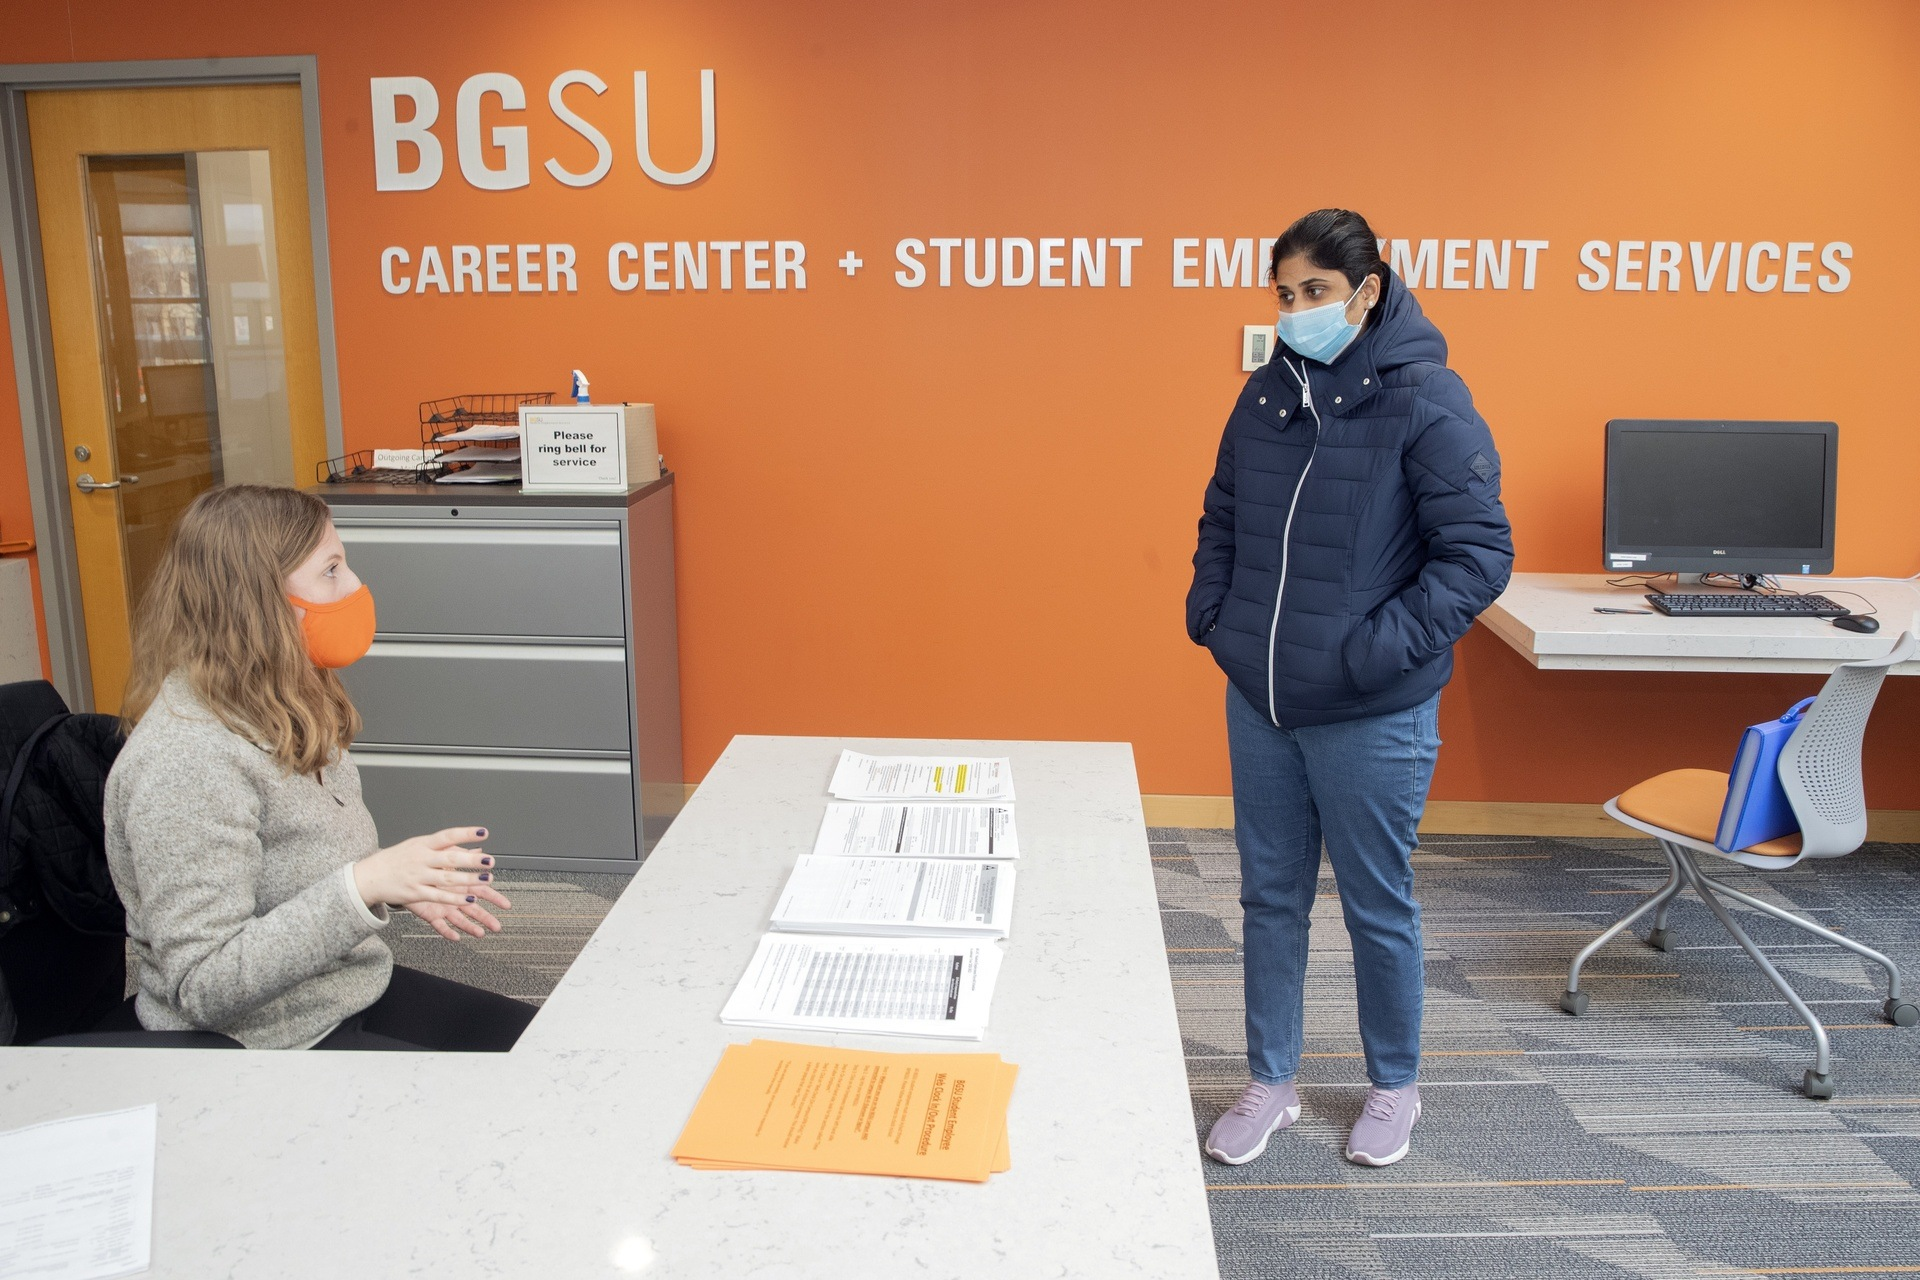 A female student wearing a facemask chats with a masked female employee of the BGSU Career Center at the front desk